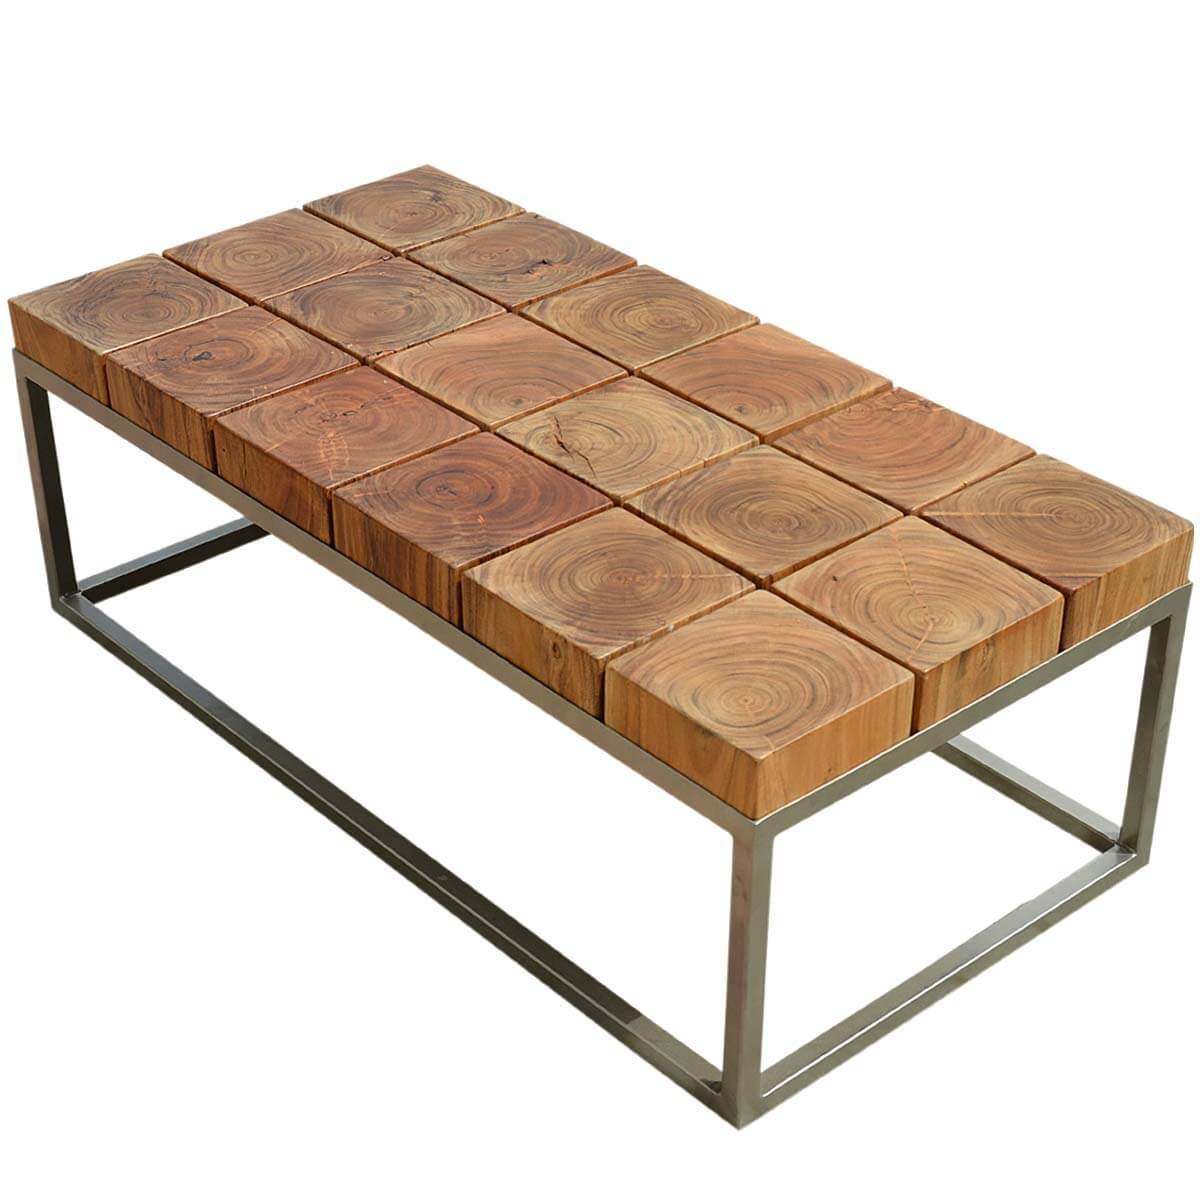 Unique solid wood industrial iron base block coffee table Bases for coffee tables